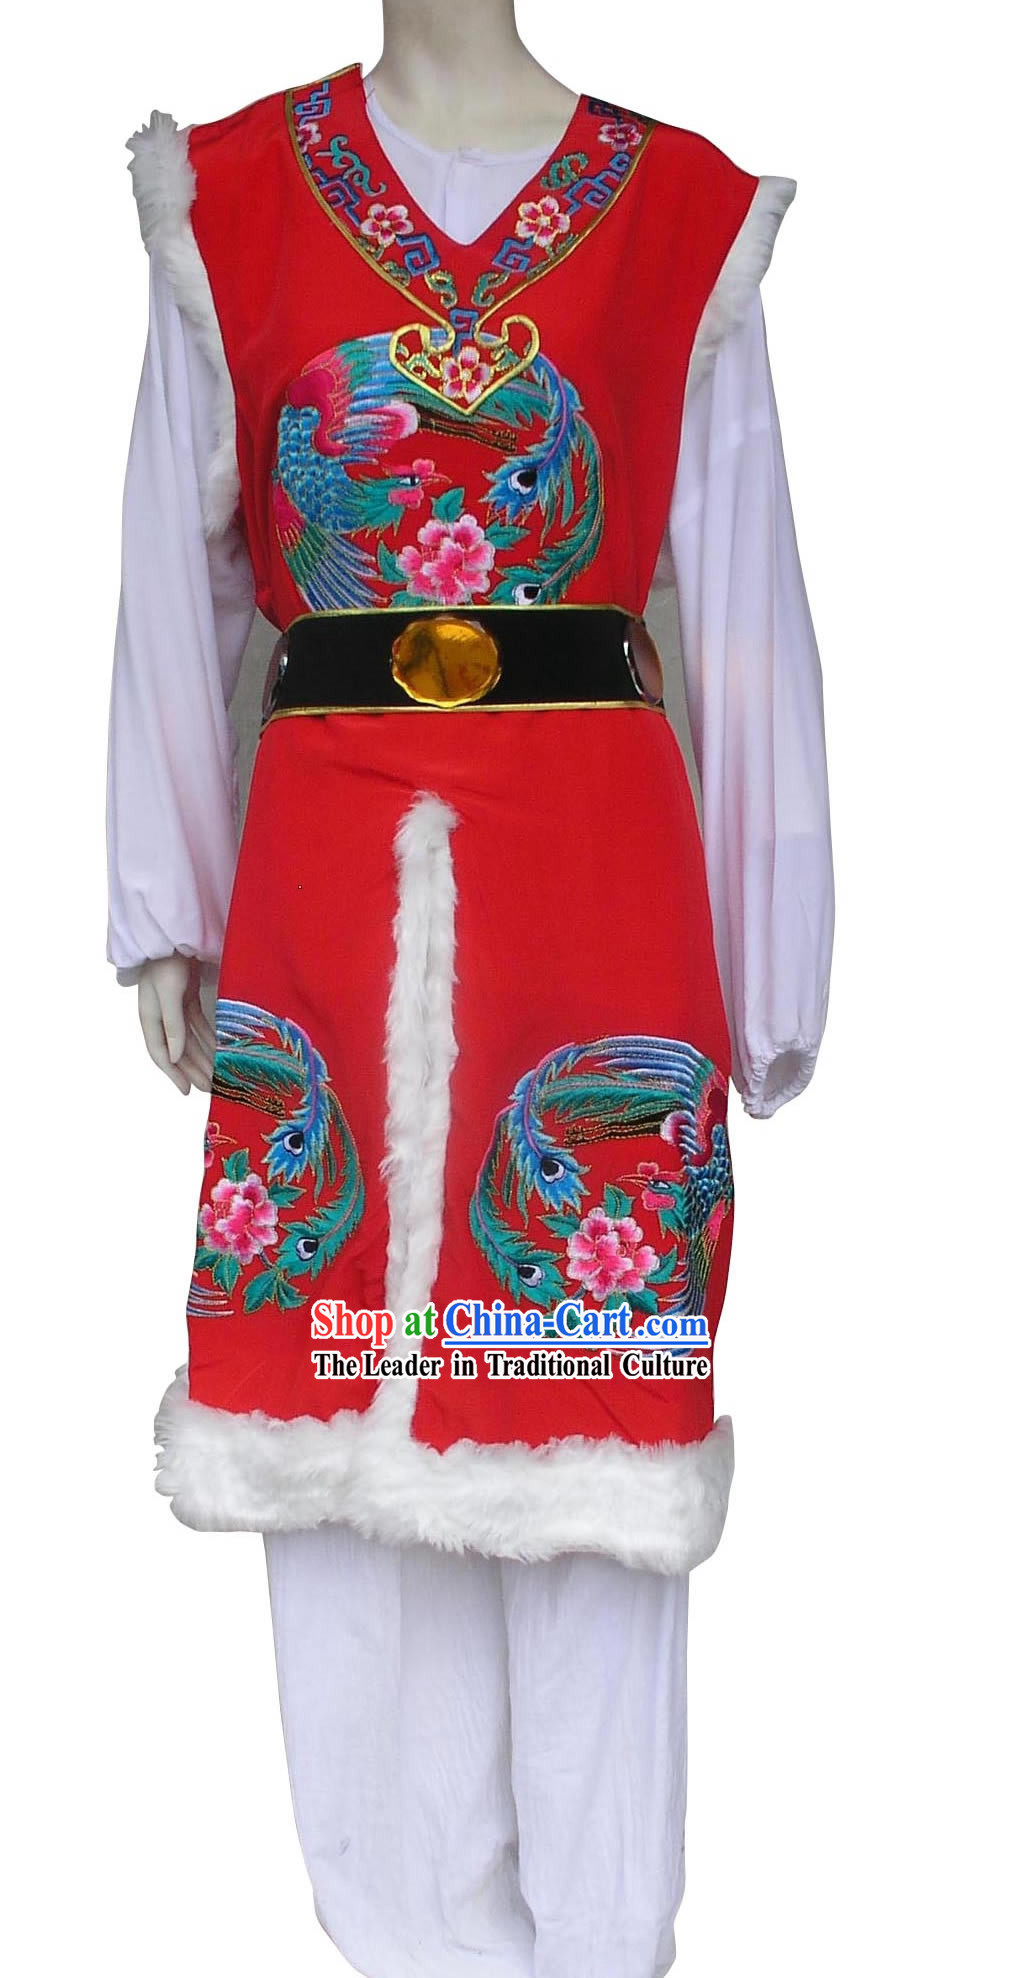 Traditional Chinese Baoyu Embroidered Red Jacket